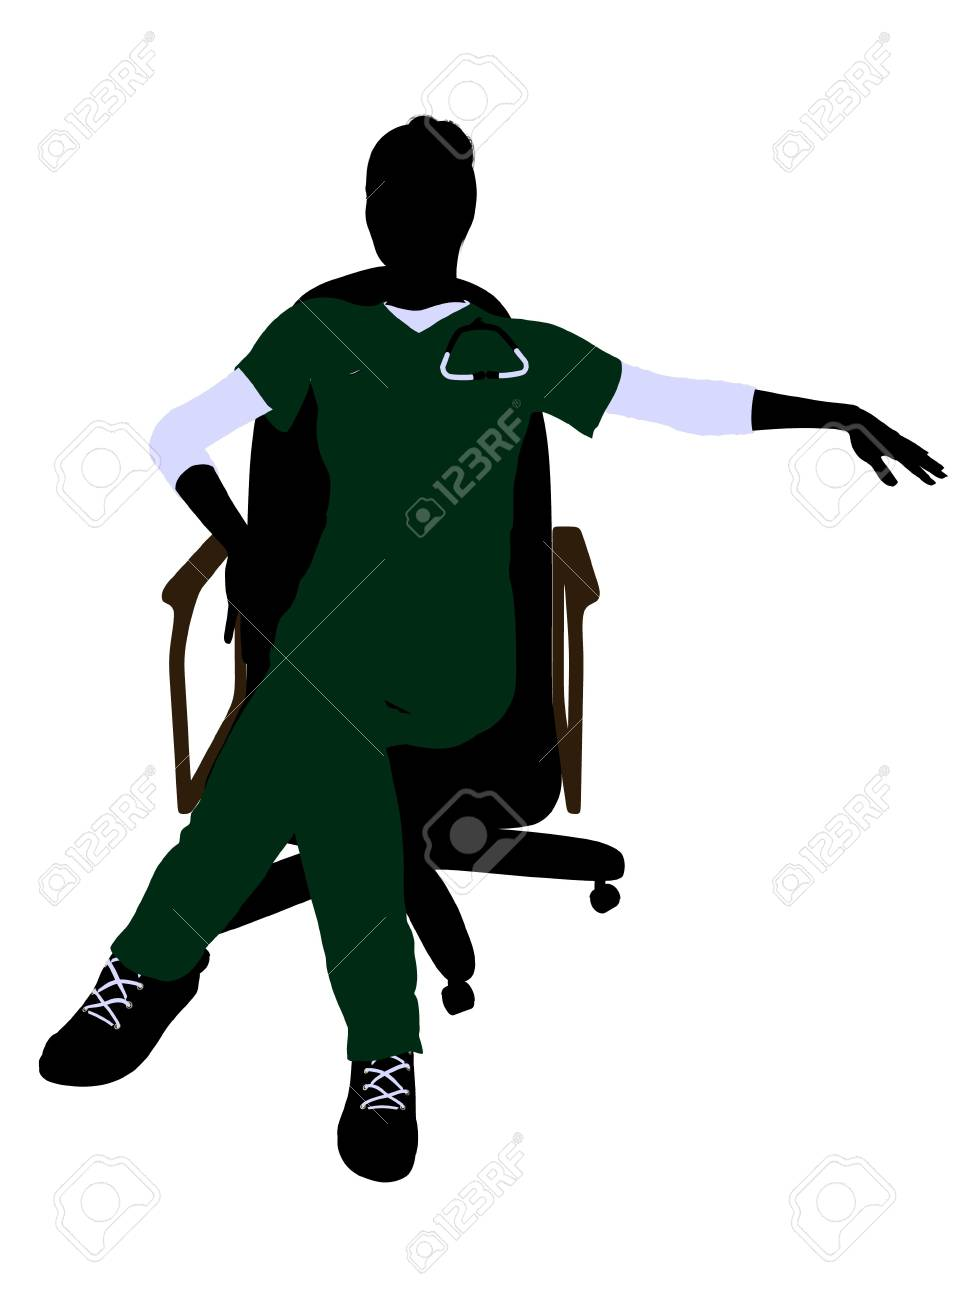 Female doctor sitting on a chair art illustration silhouette on a white background Stock Illustration - 7061156